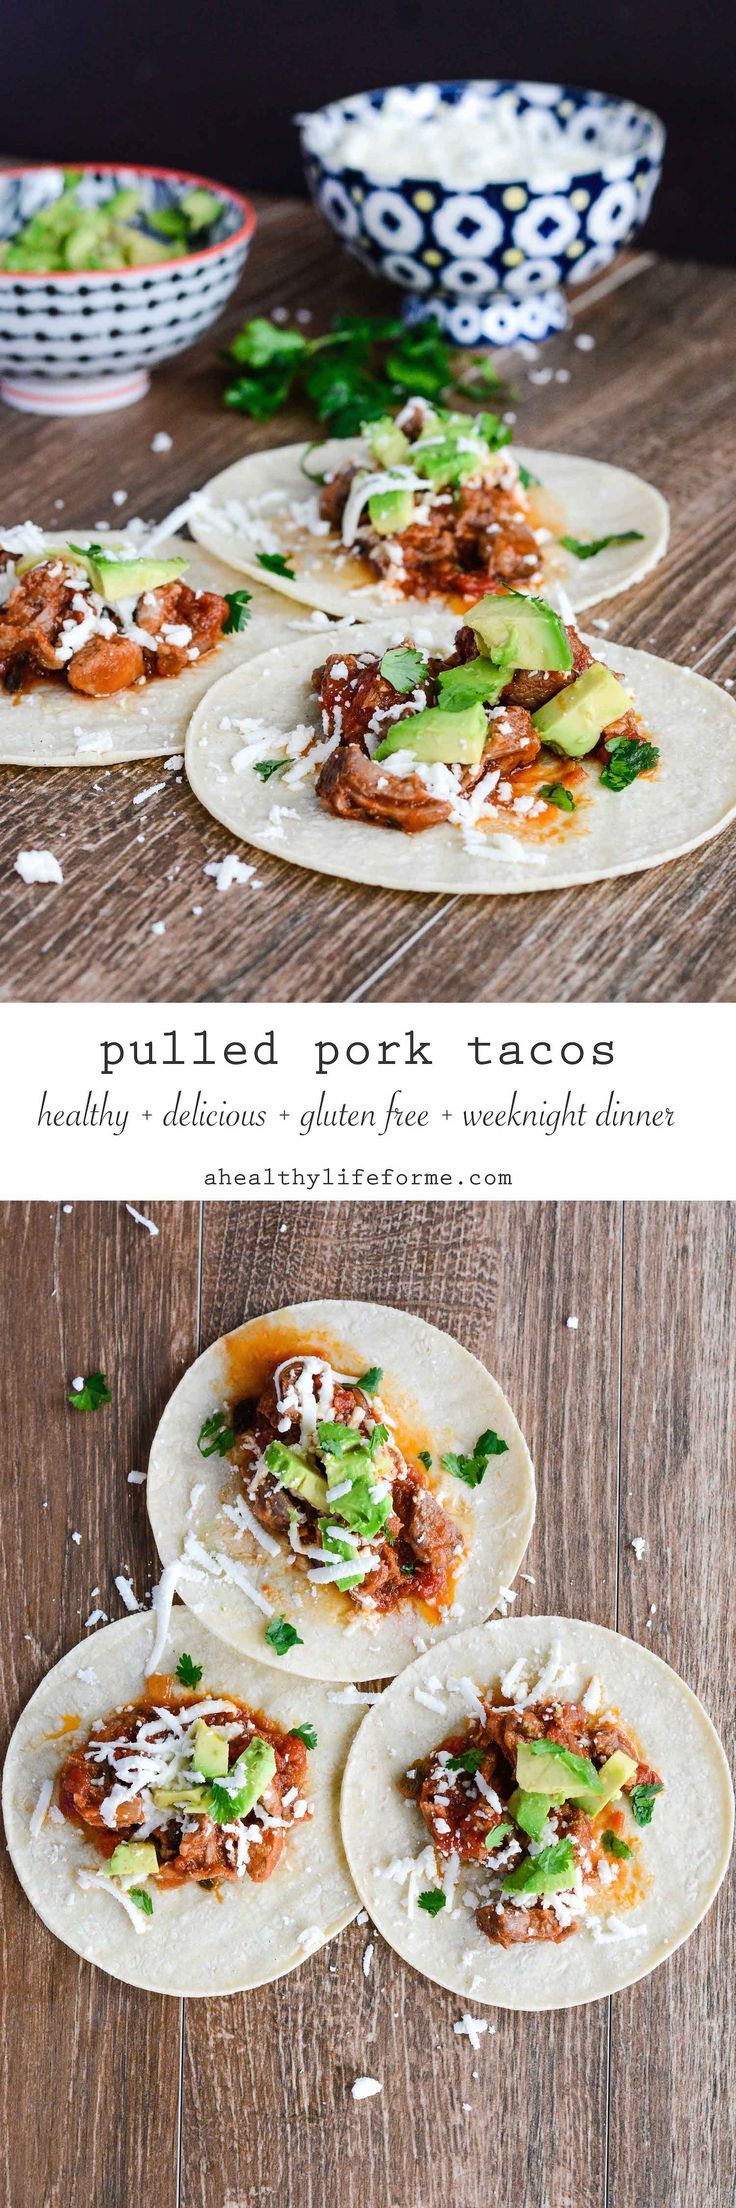 Pulled Pork Tacos {gluten free} are loaded with tons of flavor are healthy and gluten free.  The perfect weeknight dinner. - A Healthy Life For Me